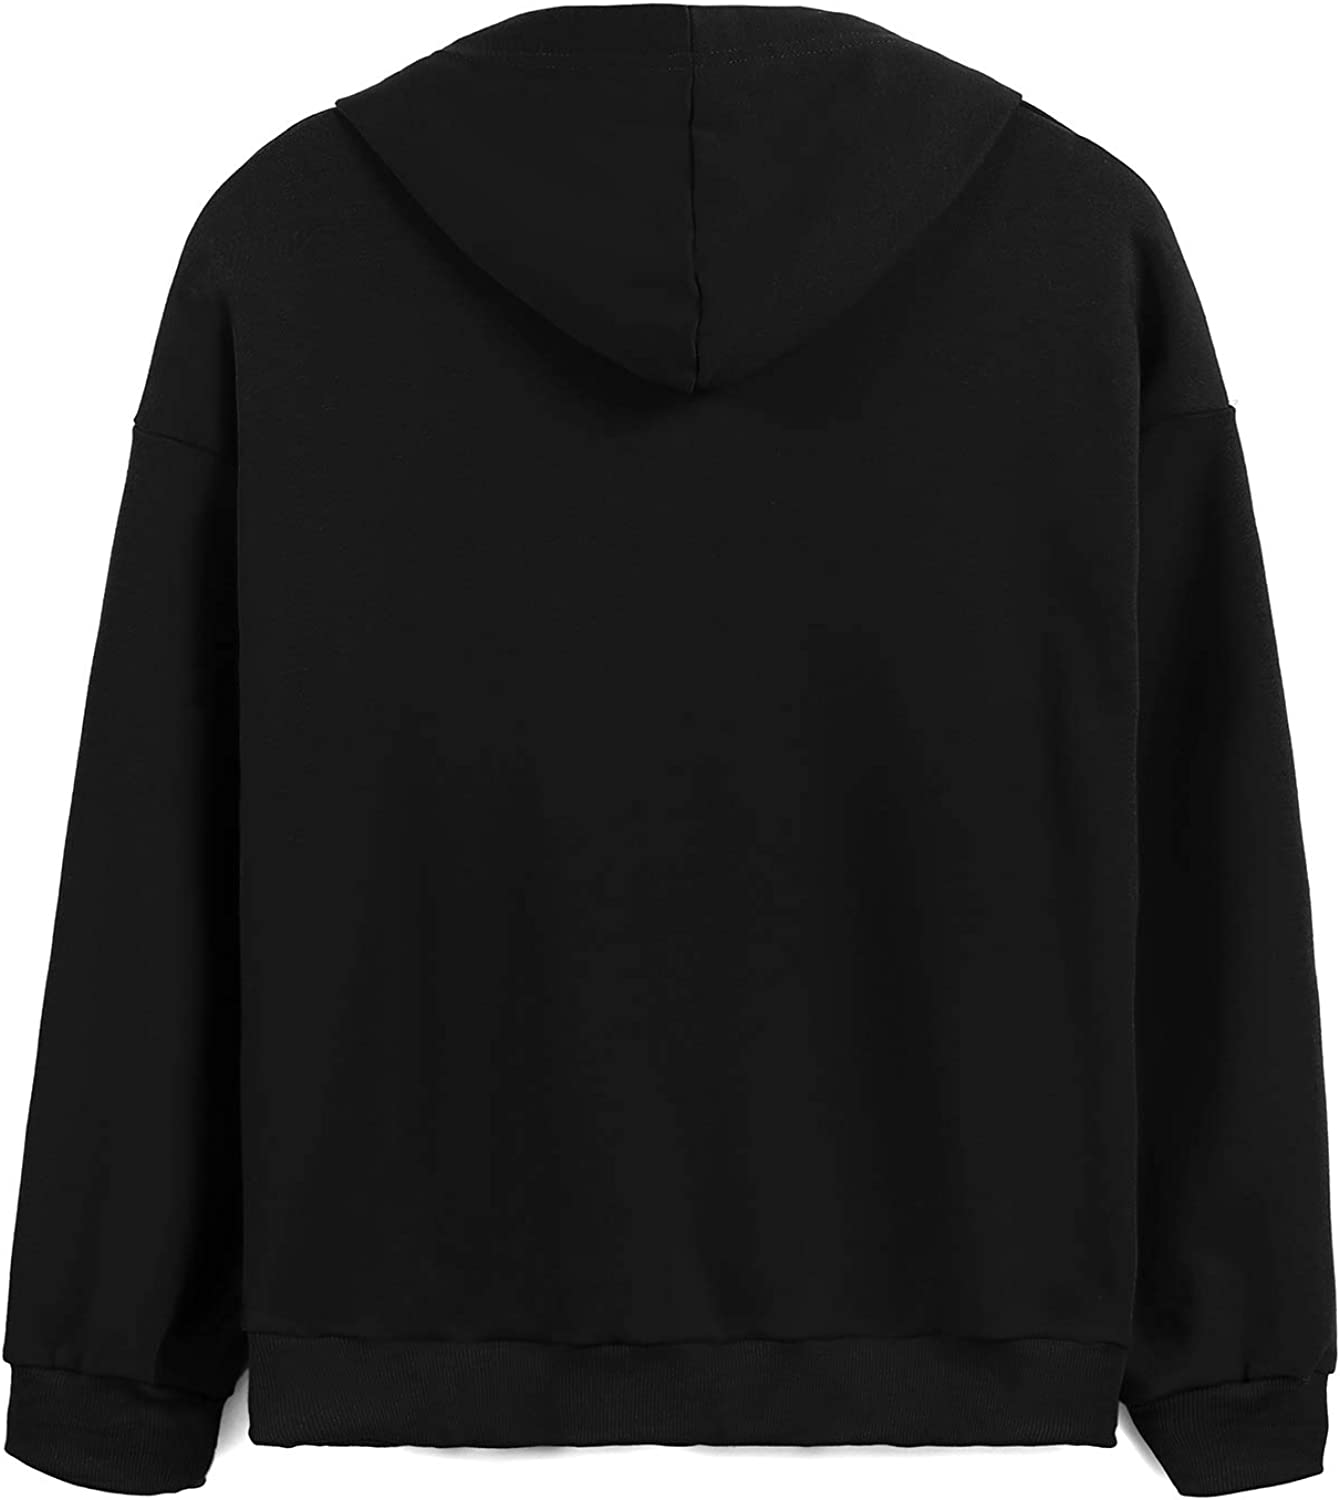 Donnalla Womens Long Sleeve Hoodies Sequined Tops O-Neck Funny Graphic Pullover Shirt Sweater